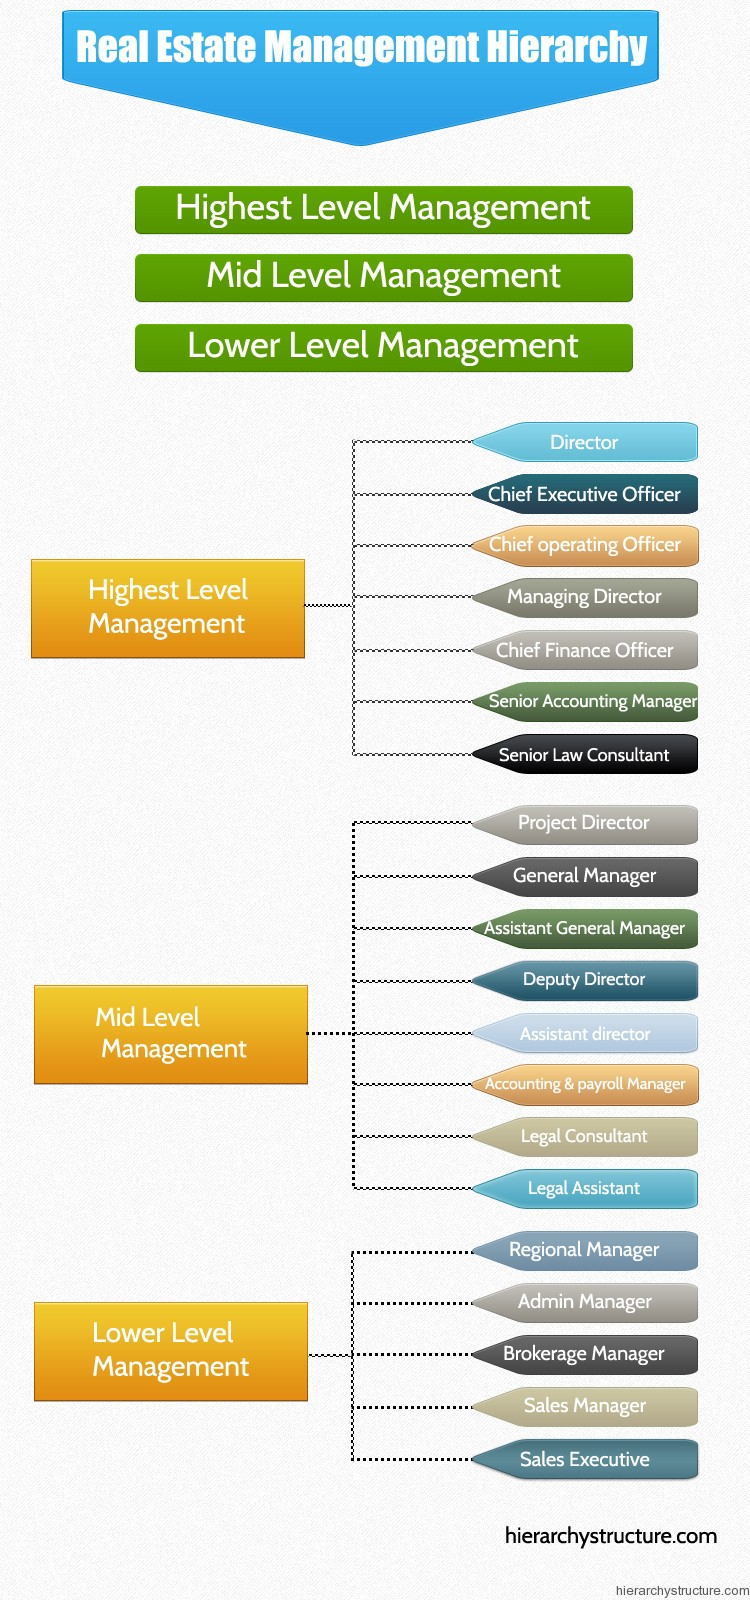 Real Estate Management Hierarchy